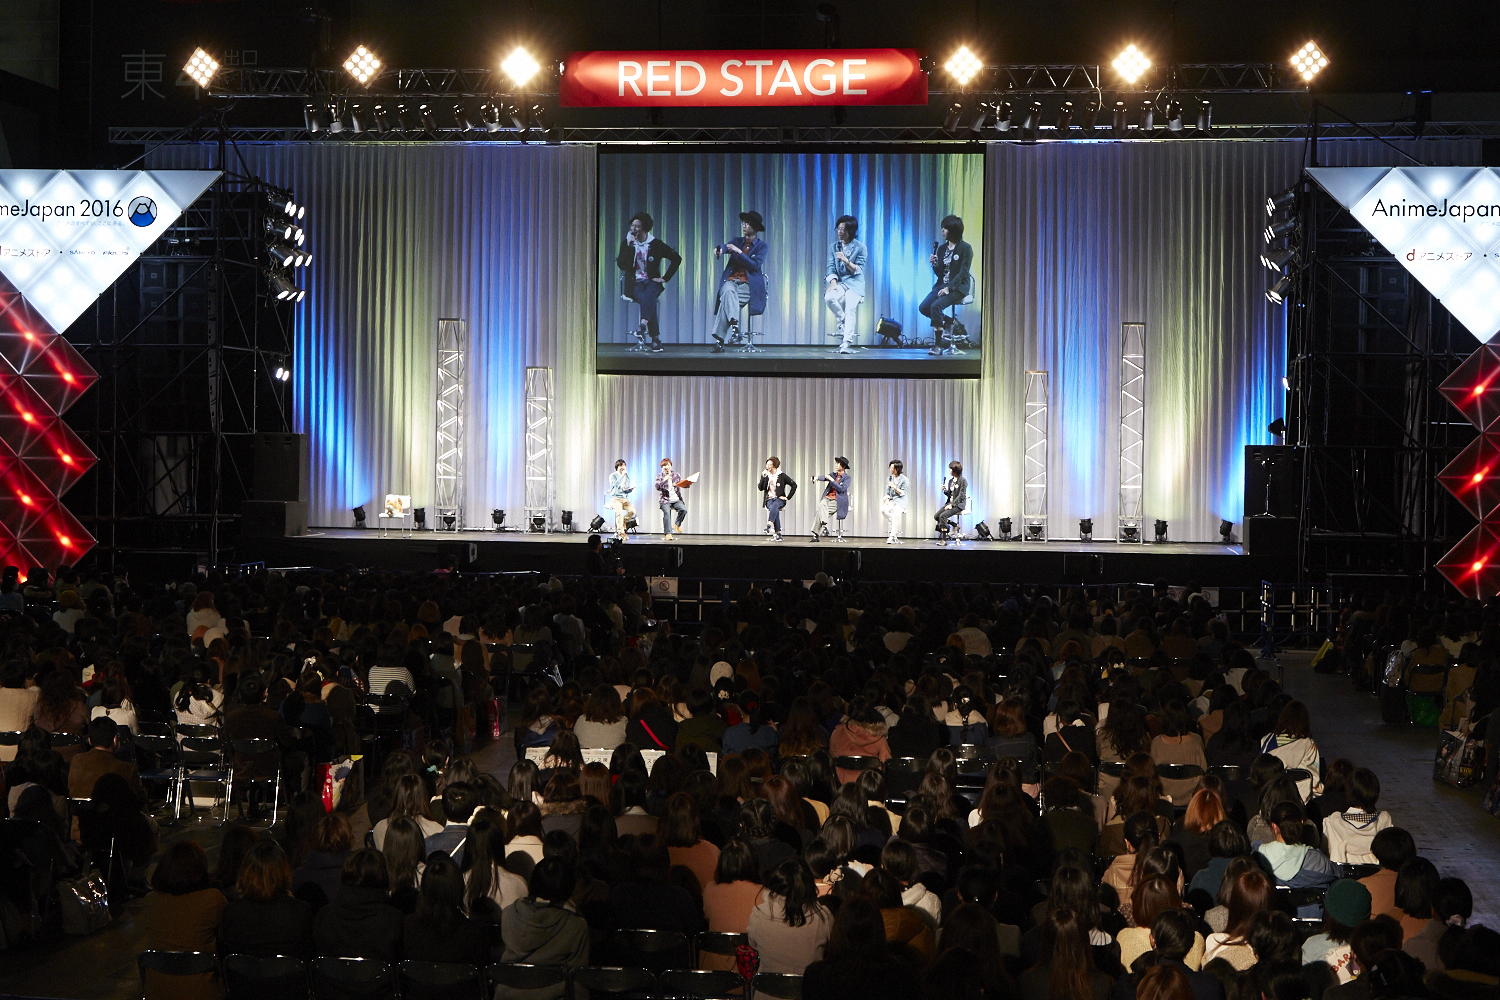 animejapan 2017 red stage